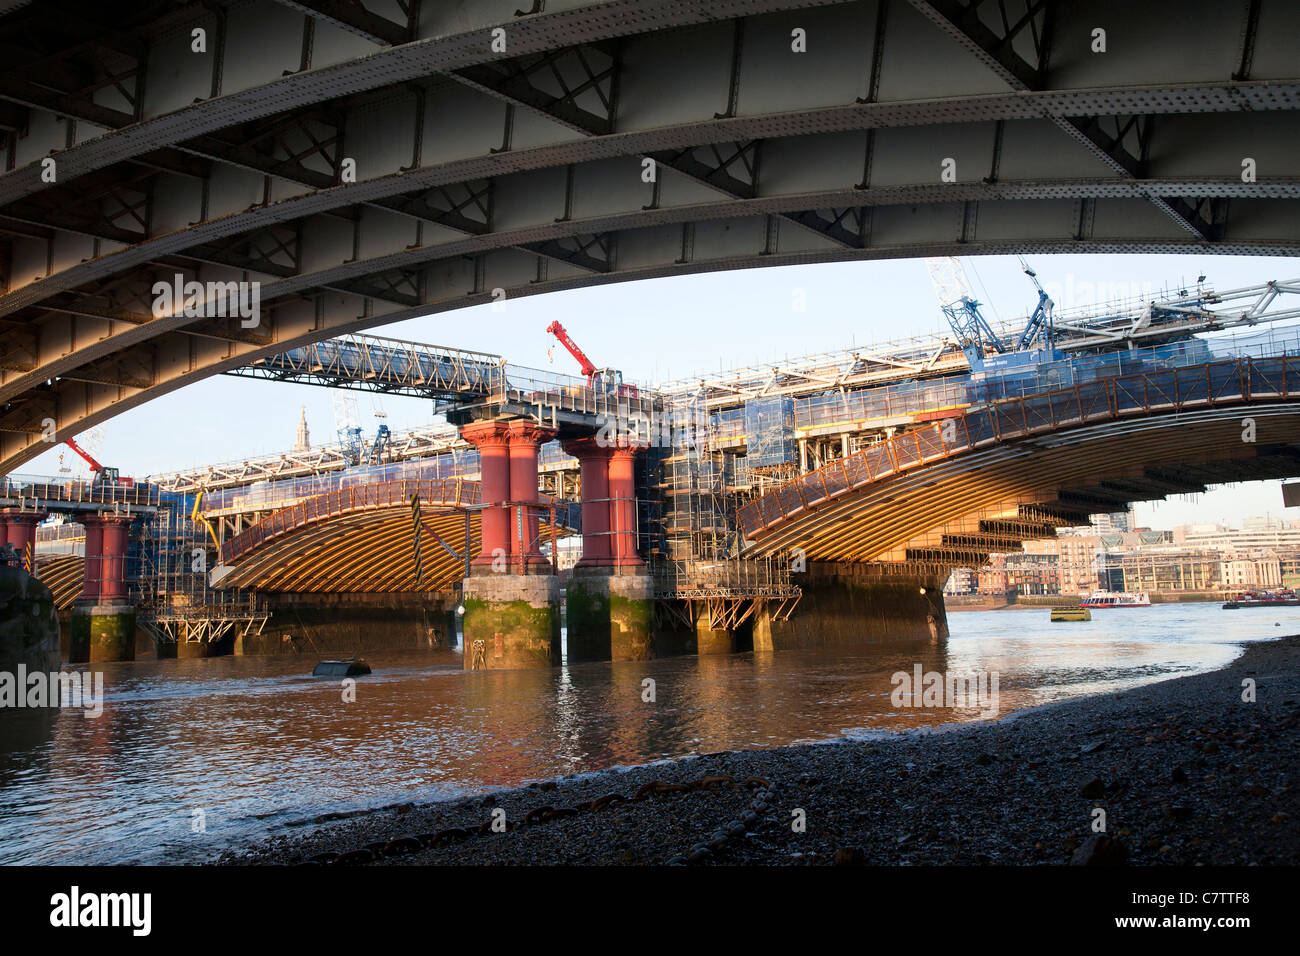 A view from below Blackfriars bridge London of the construction work being carried out on Blackfriars railway bridge. - Stock Image